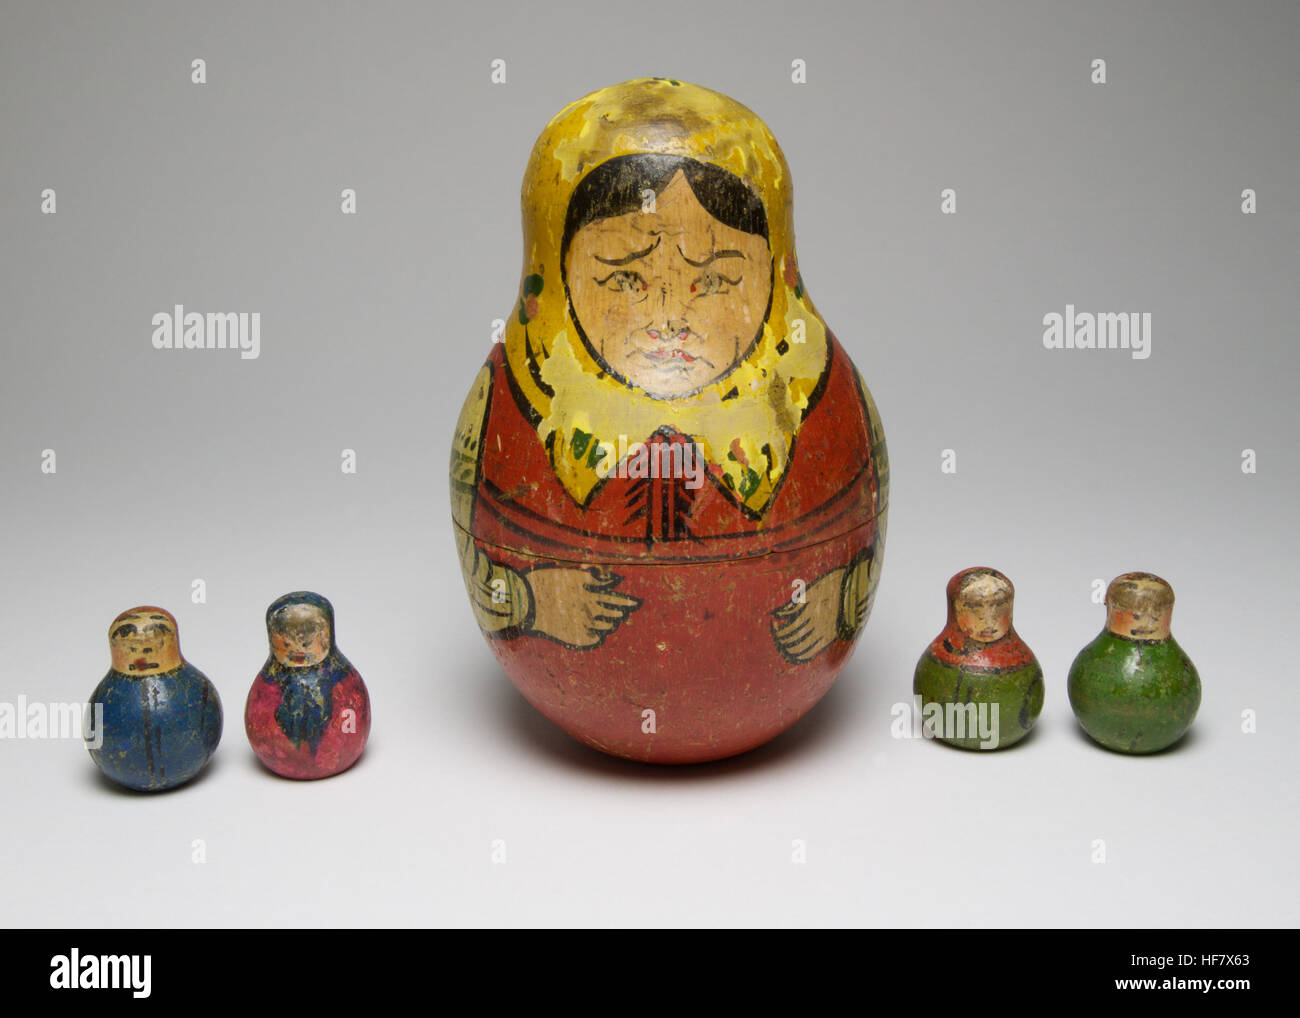 Vintage handpainted Russian wooden doll, which contains 4 small weighted wooden dolls. The four small dolls are - Stock Image